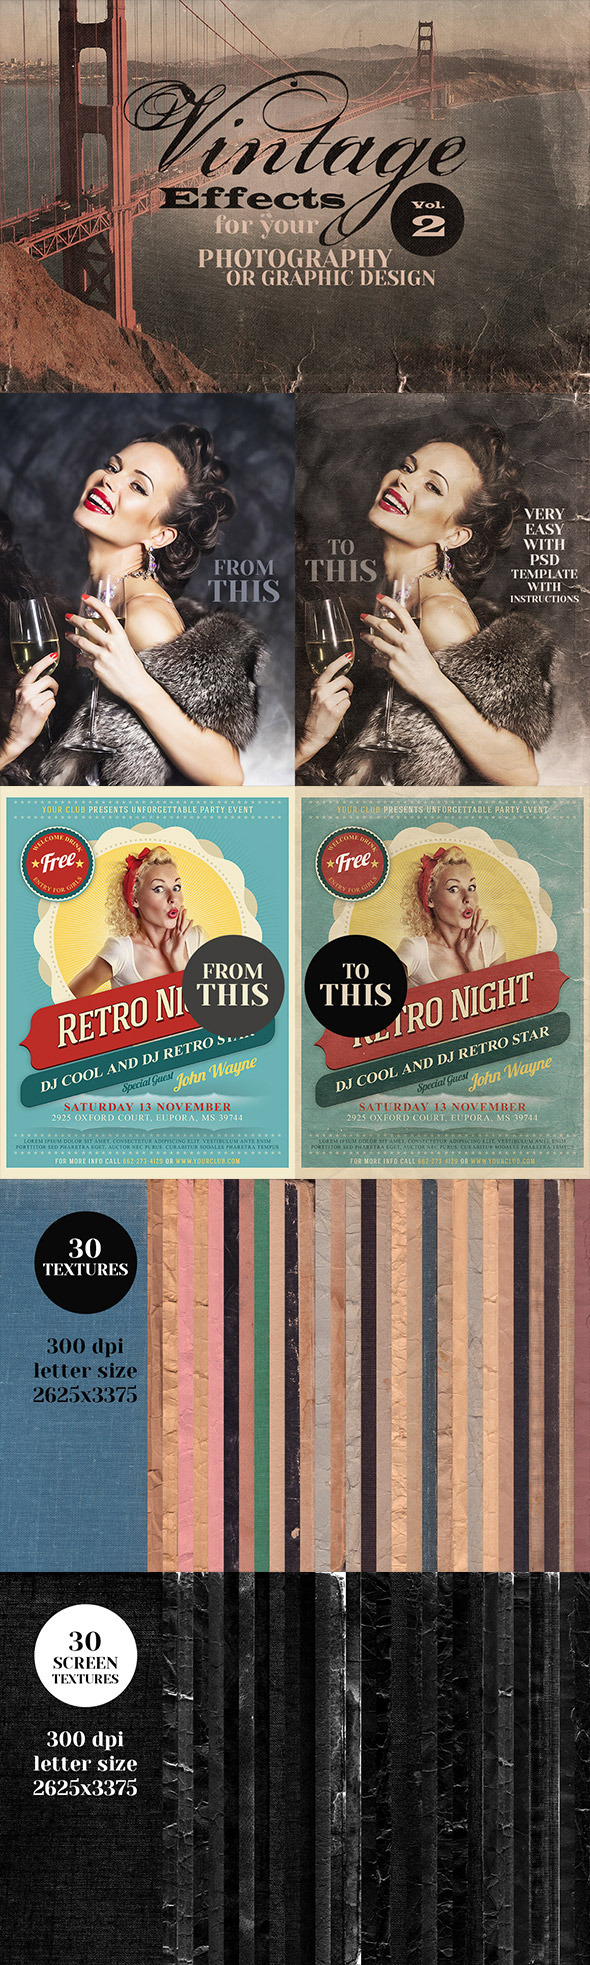 Vintage Effects for Photo or Designs vol.2 - Textures / Fills / Patterns Photoshop